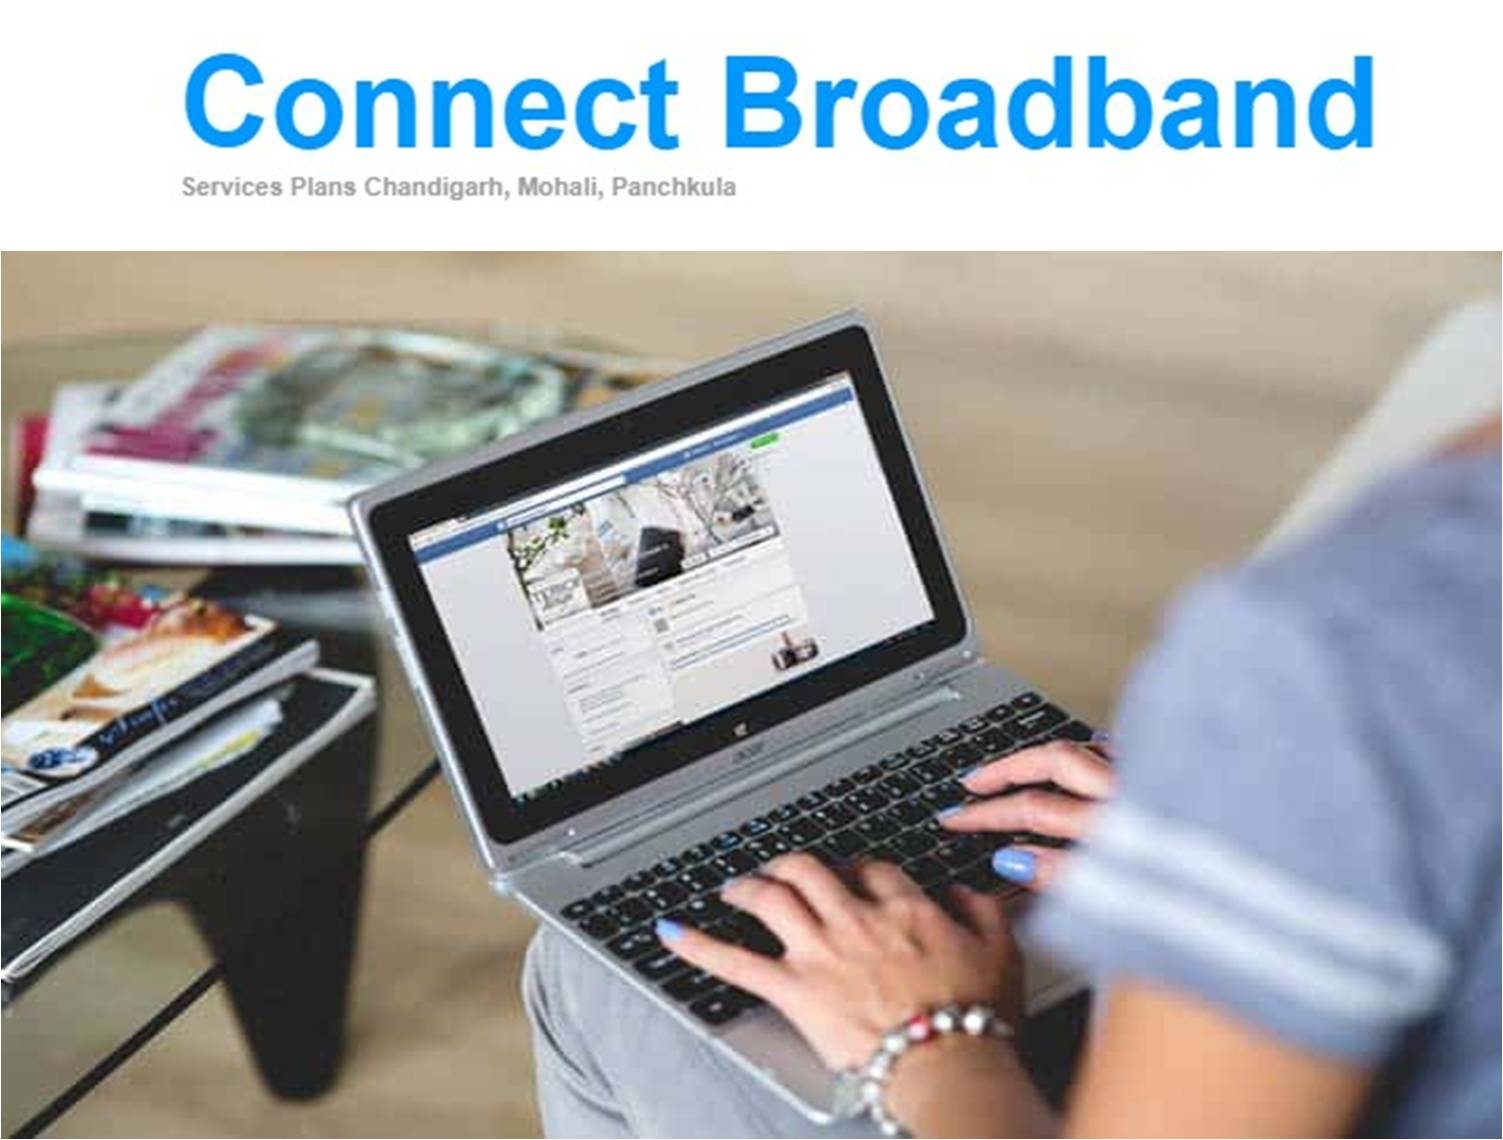 Image for Connect Broadband Connection Chandigarh